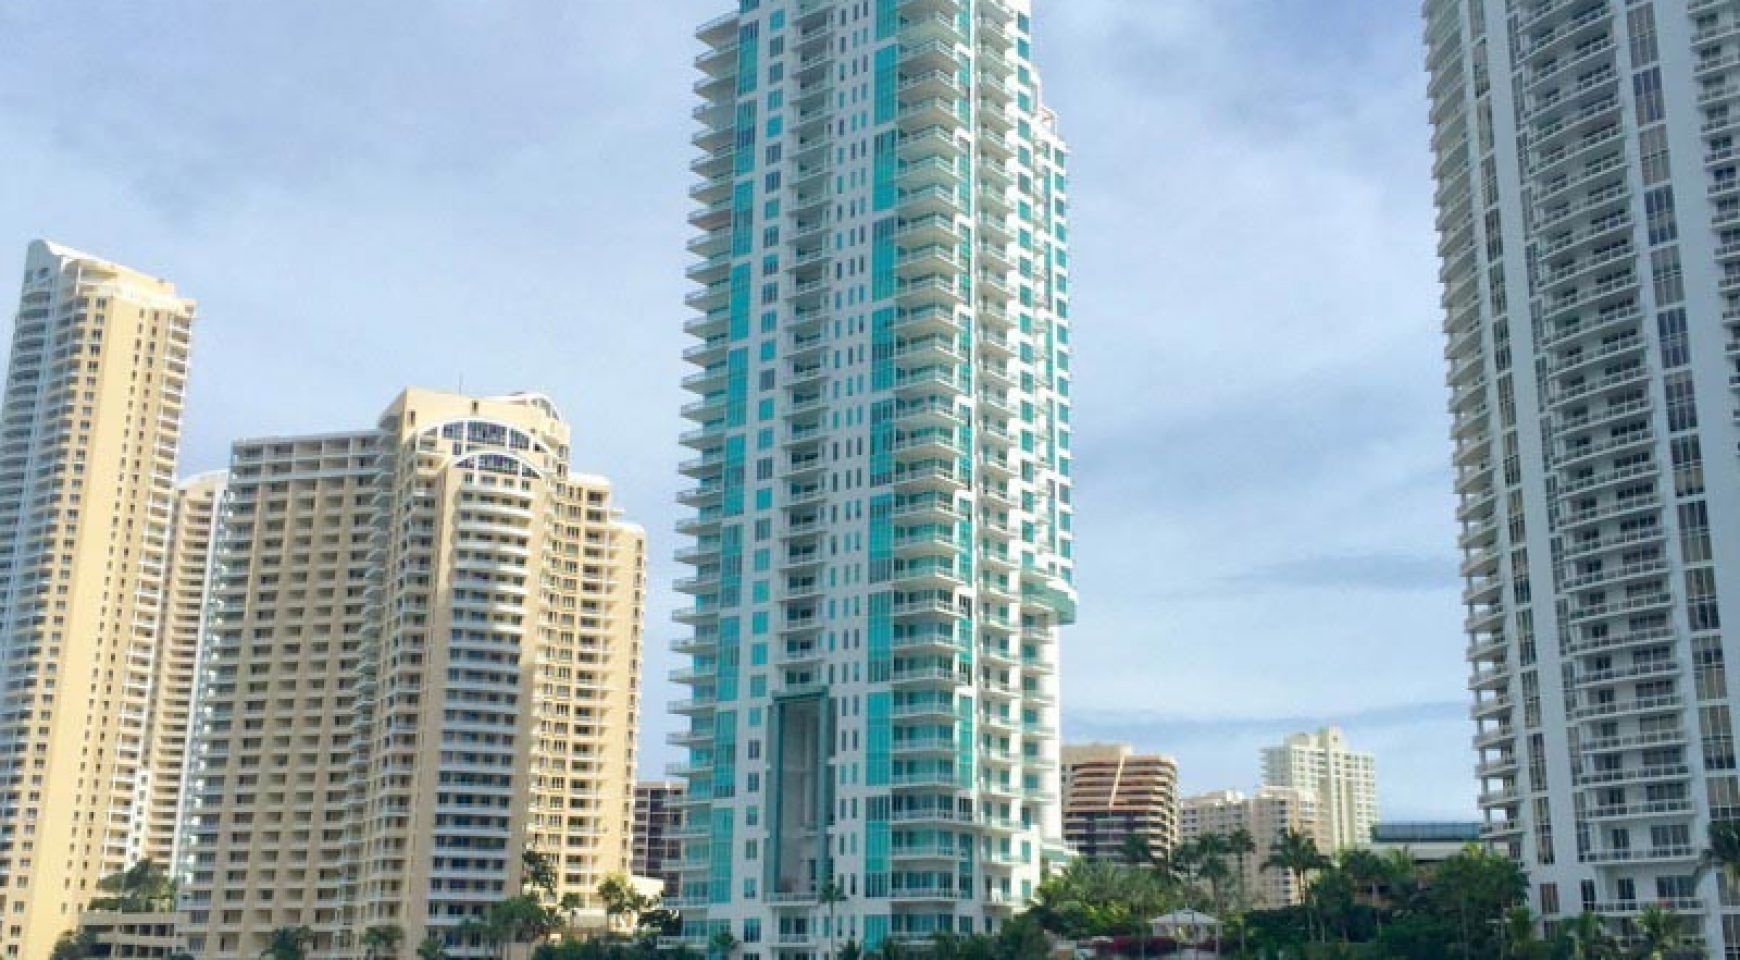 ASIA At Brickell Key Unit 1804 Brickell, Miami, FL